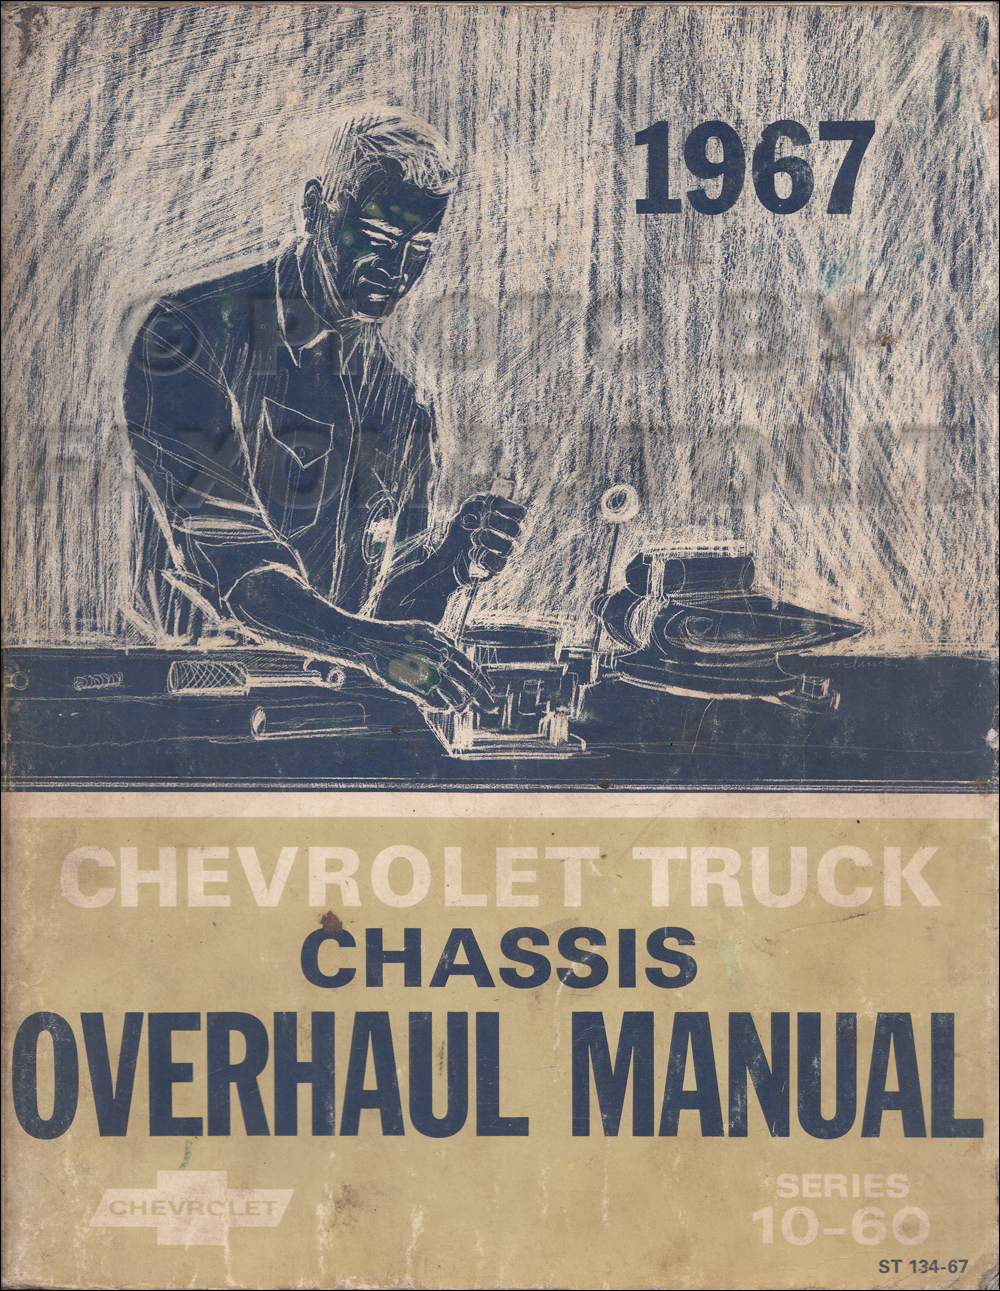 1967 Chevy 10-60 Truck Engine & Transmission Overhaul Manual Original